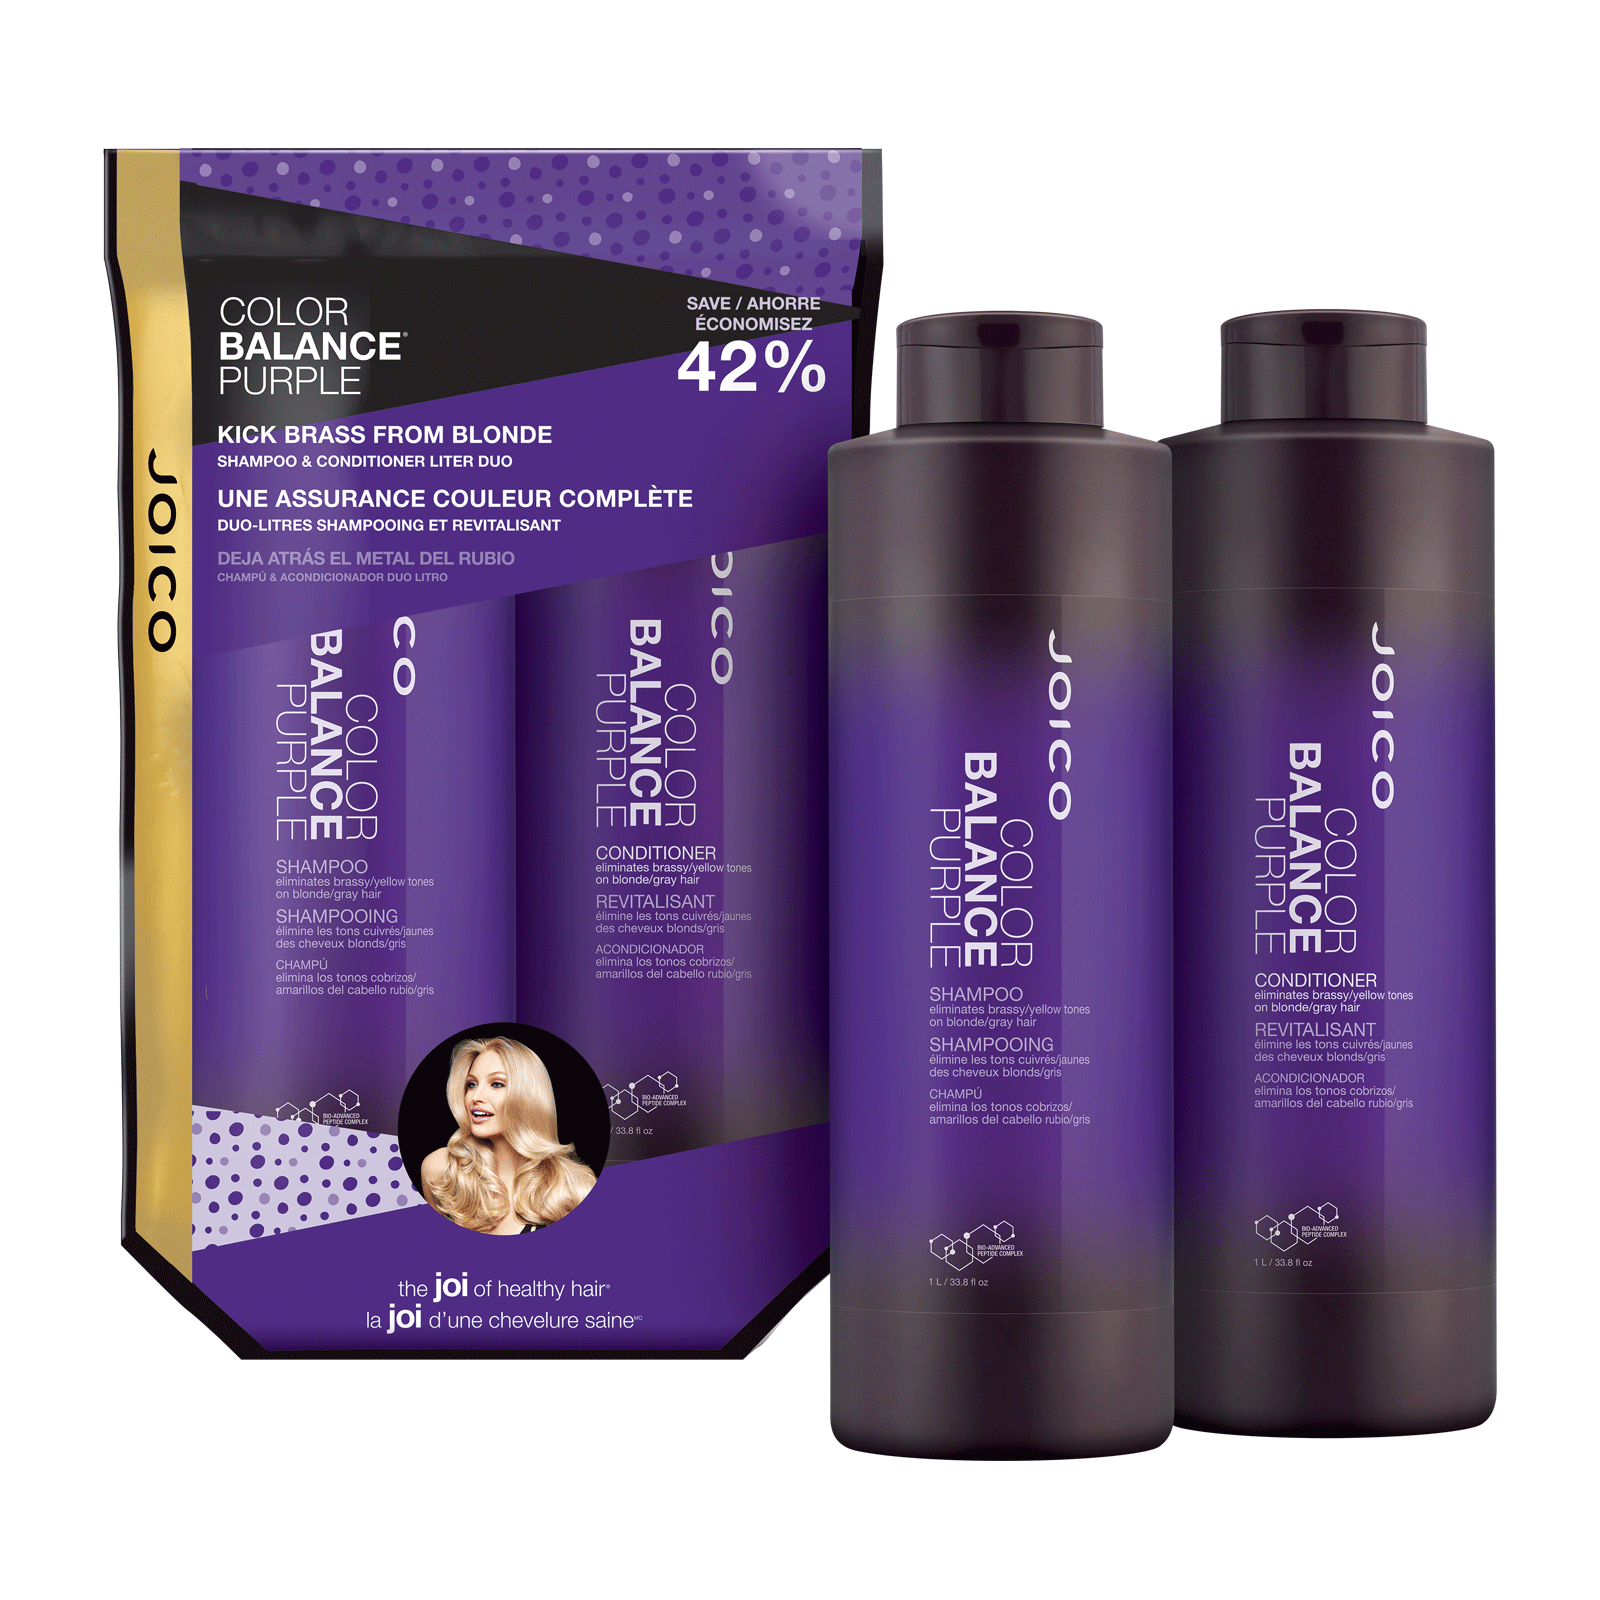 Nuance Shampoo Conditioner: 0 listings